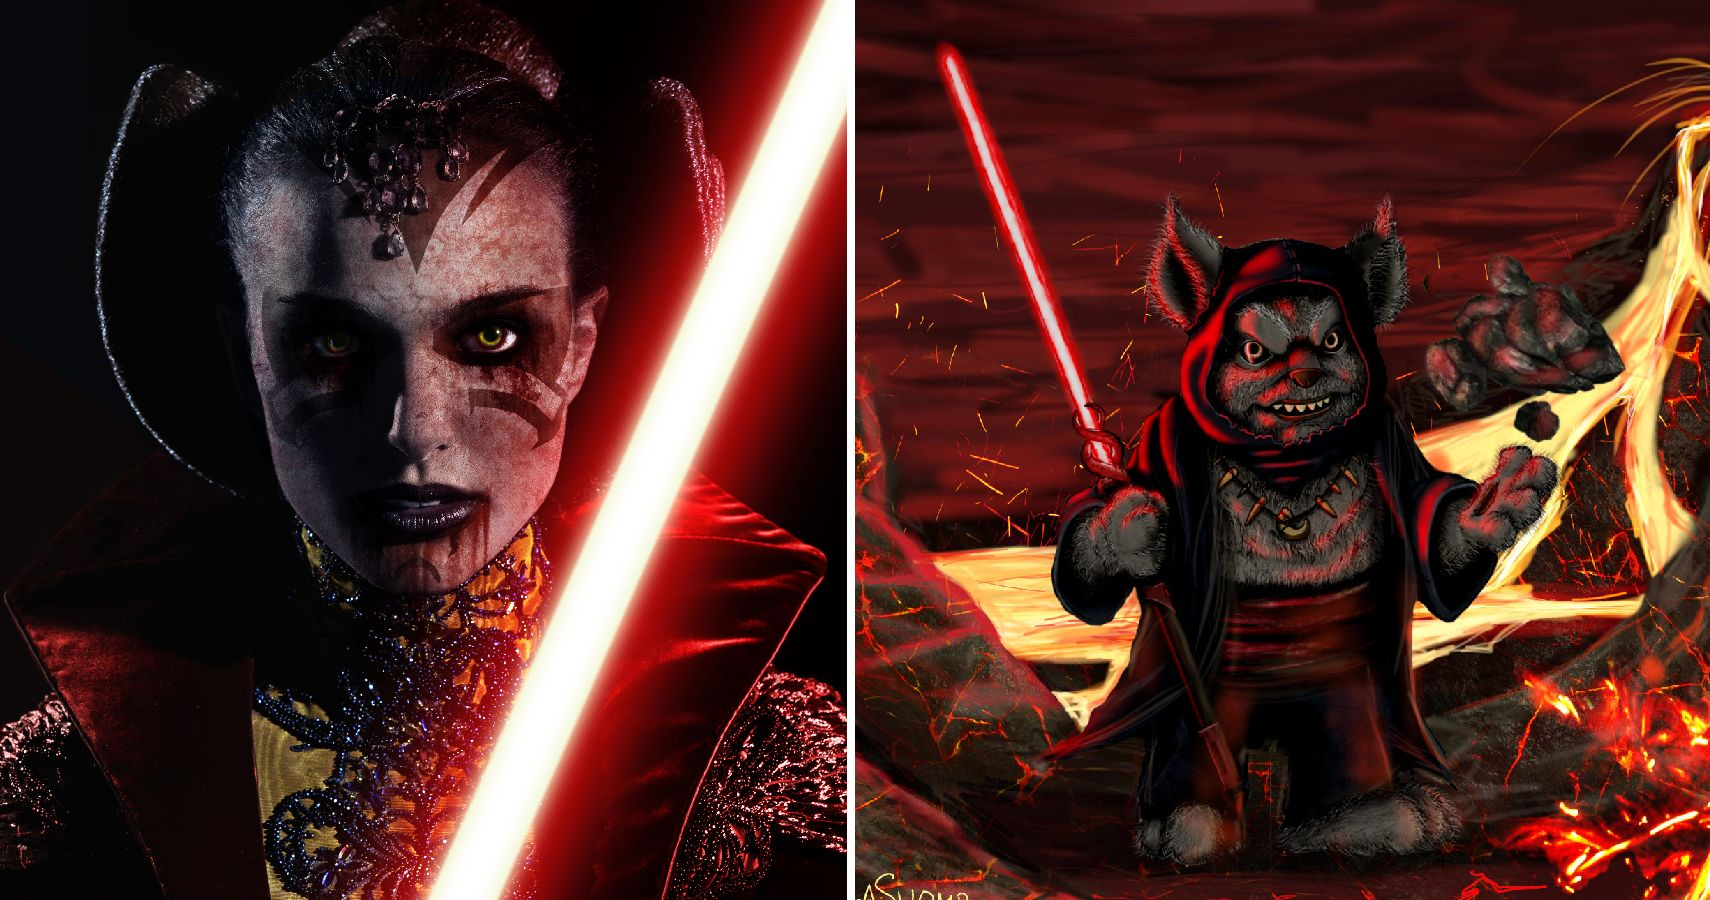 24 Star Wars Heroes Reimagined As Sith Lords | TheGamer